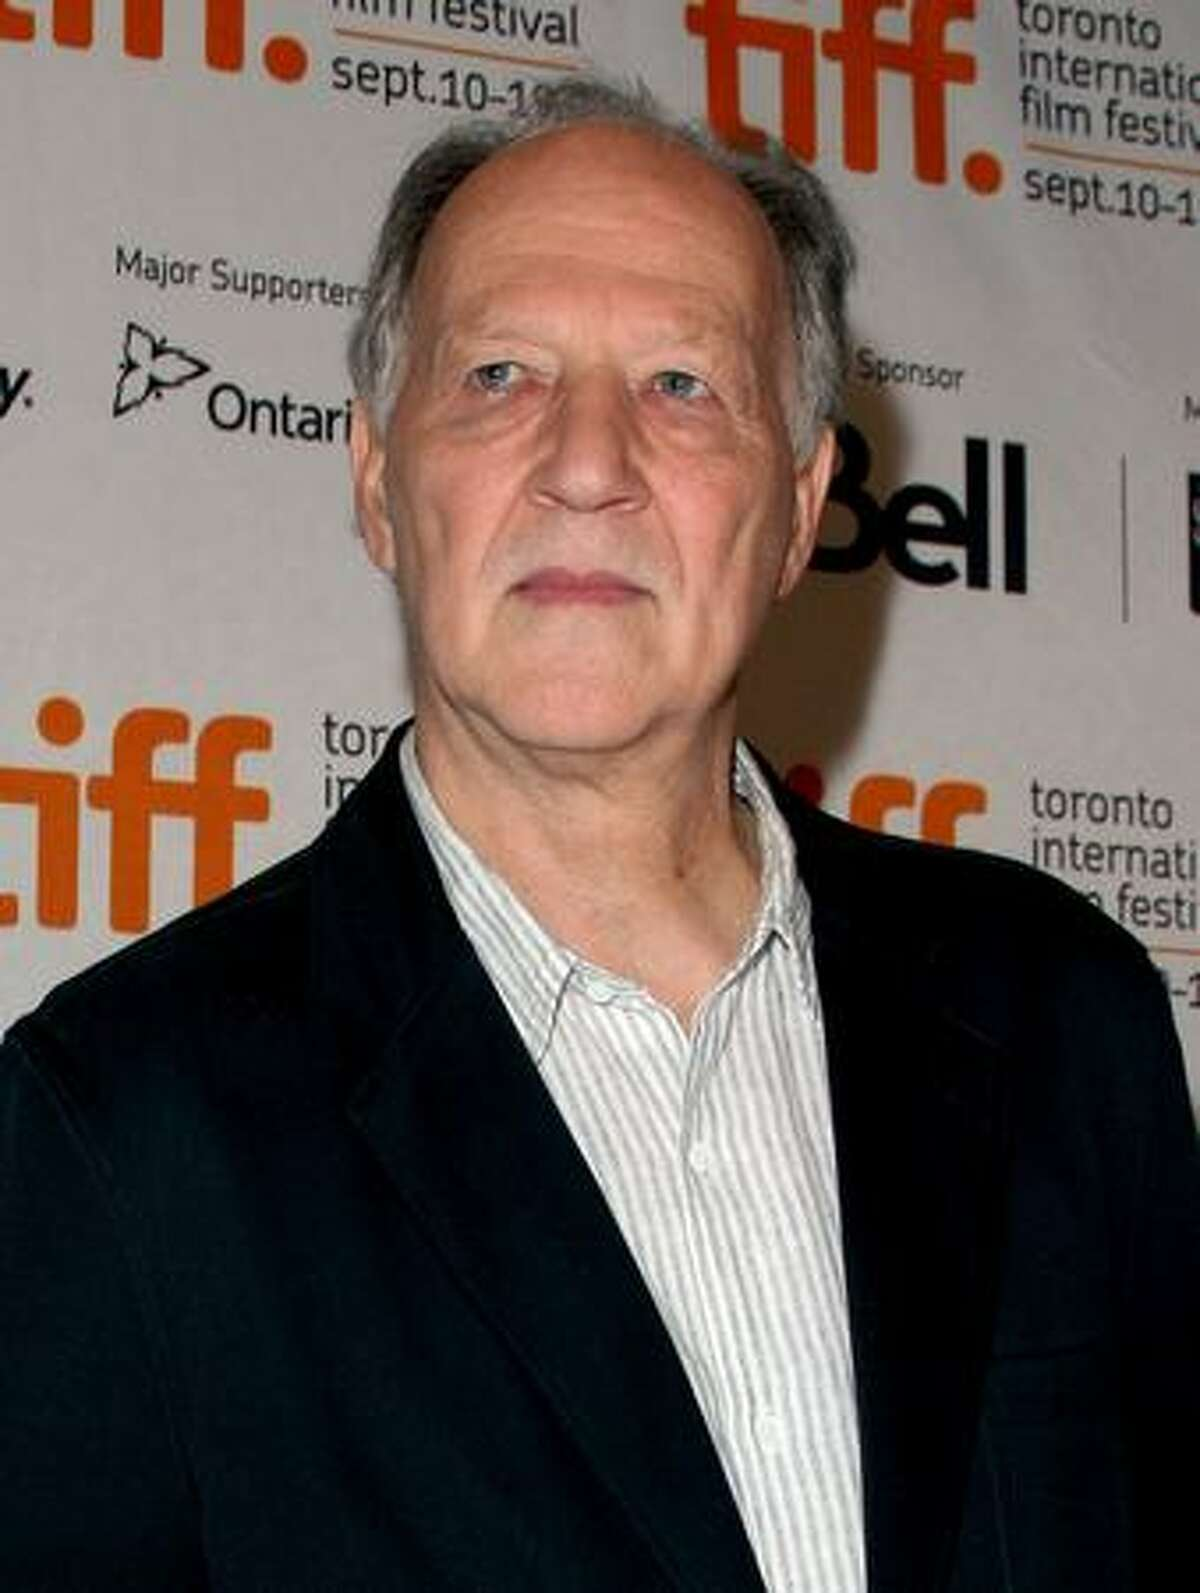 Director Werner Herzog speaks during the